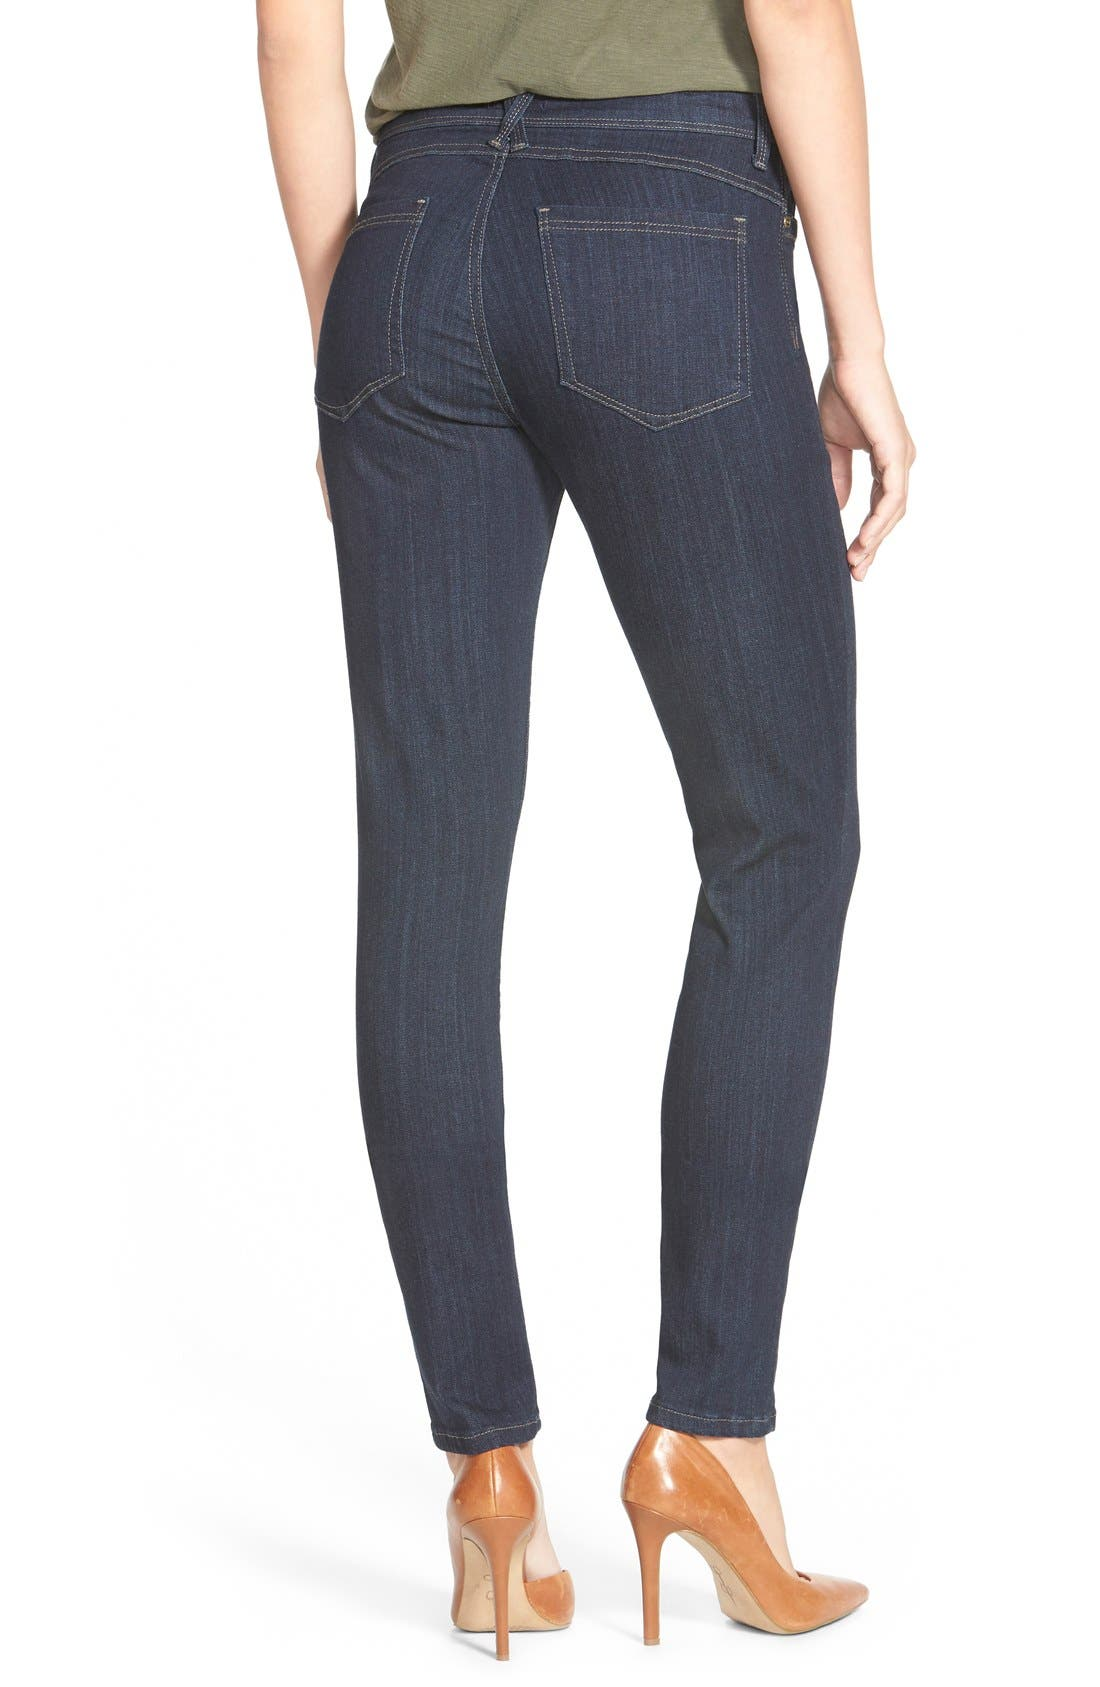 Alternate Image 2  - NYDJ 'Ami' Stretch Skinny Jeans (Regular & Petite)